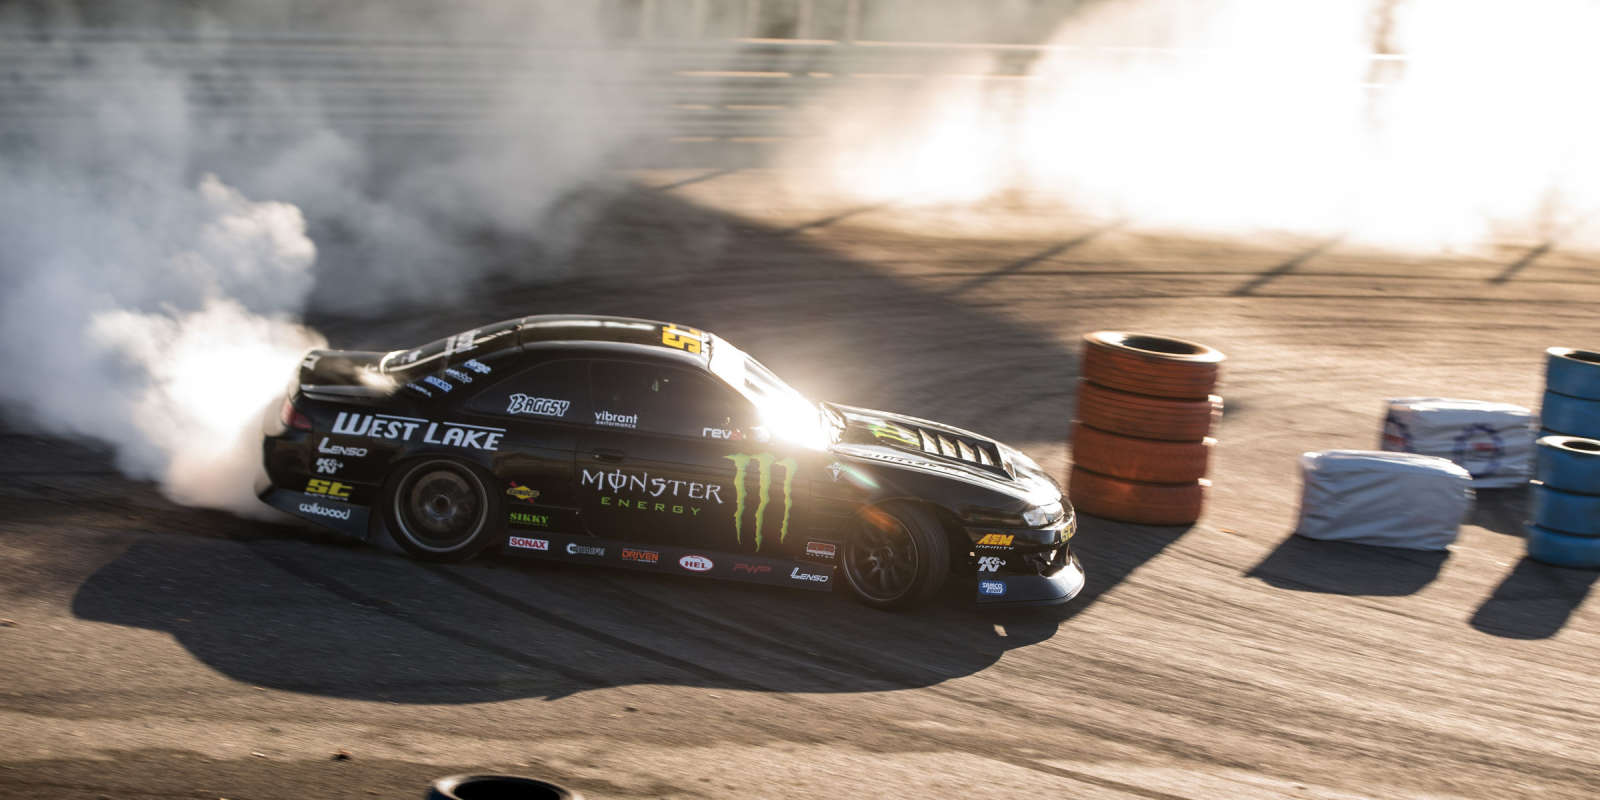 Baggsy at Monza Rally Show 2018